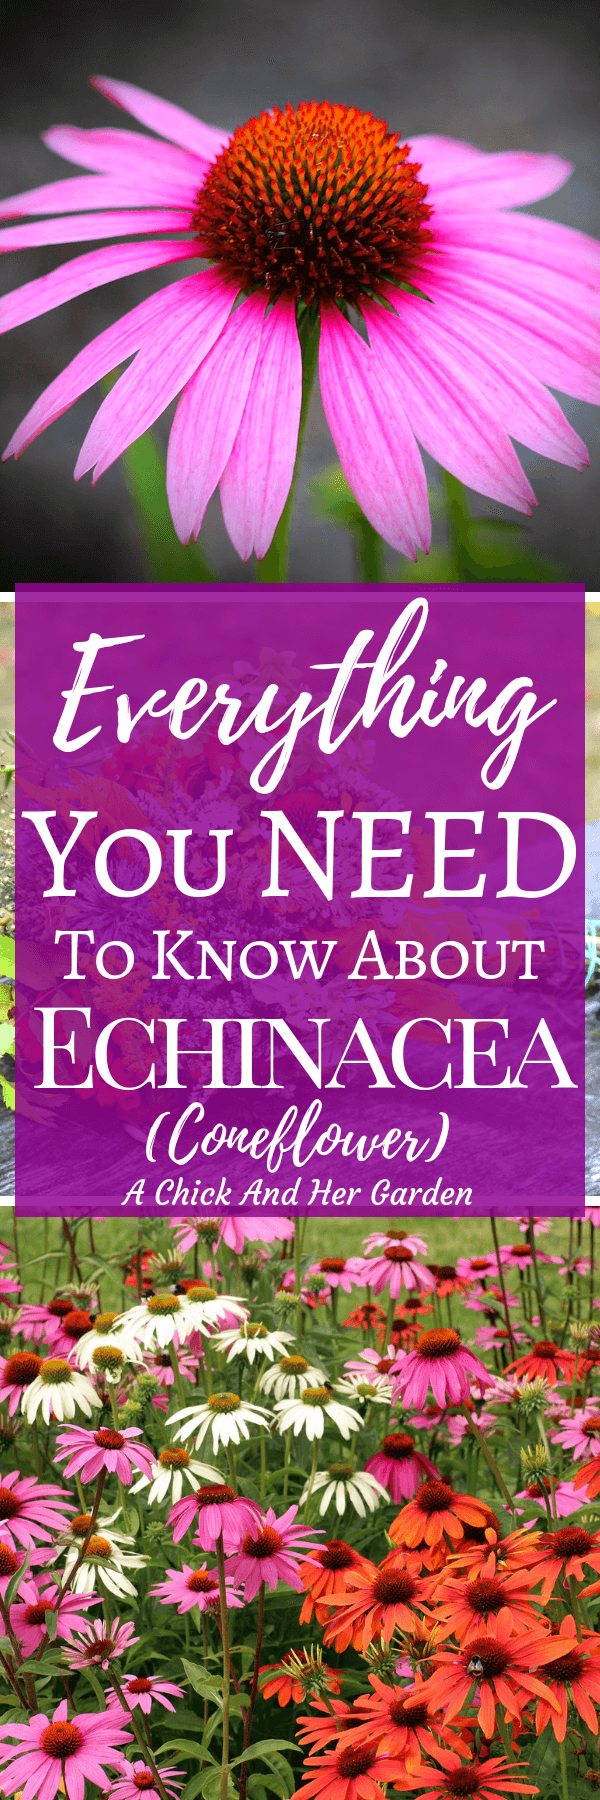 I never realized how many types of echinacea there were!  This post was such a big help! I can't wait to get in the garden!  #growingechinacea #herbs #gardening #cuttinggarden #healinggarden #achickandhergarden